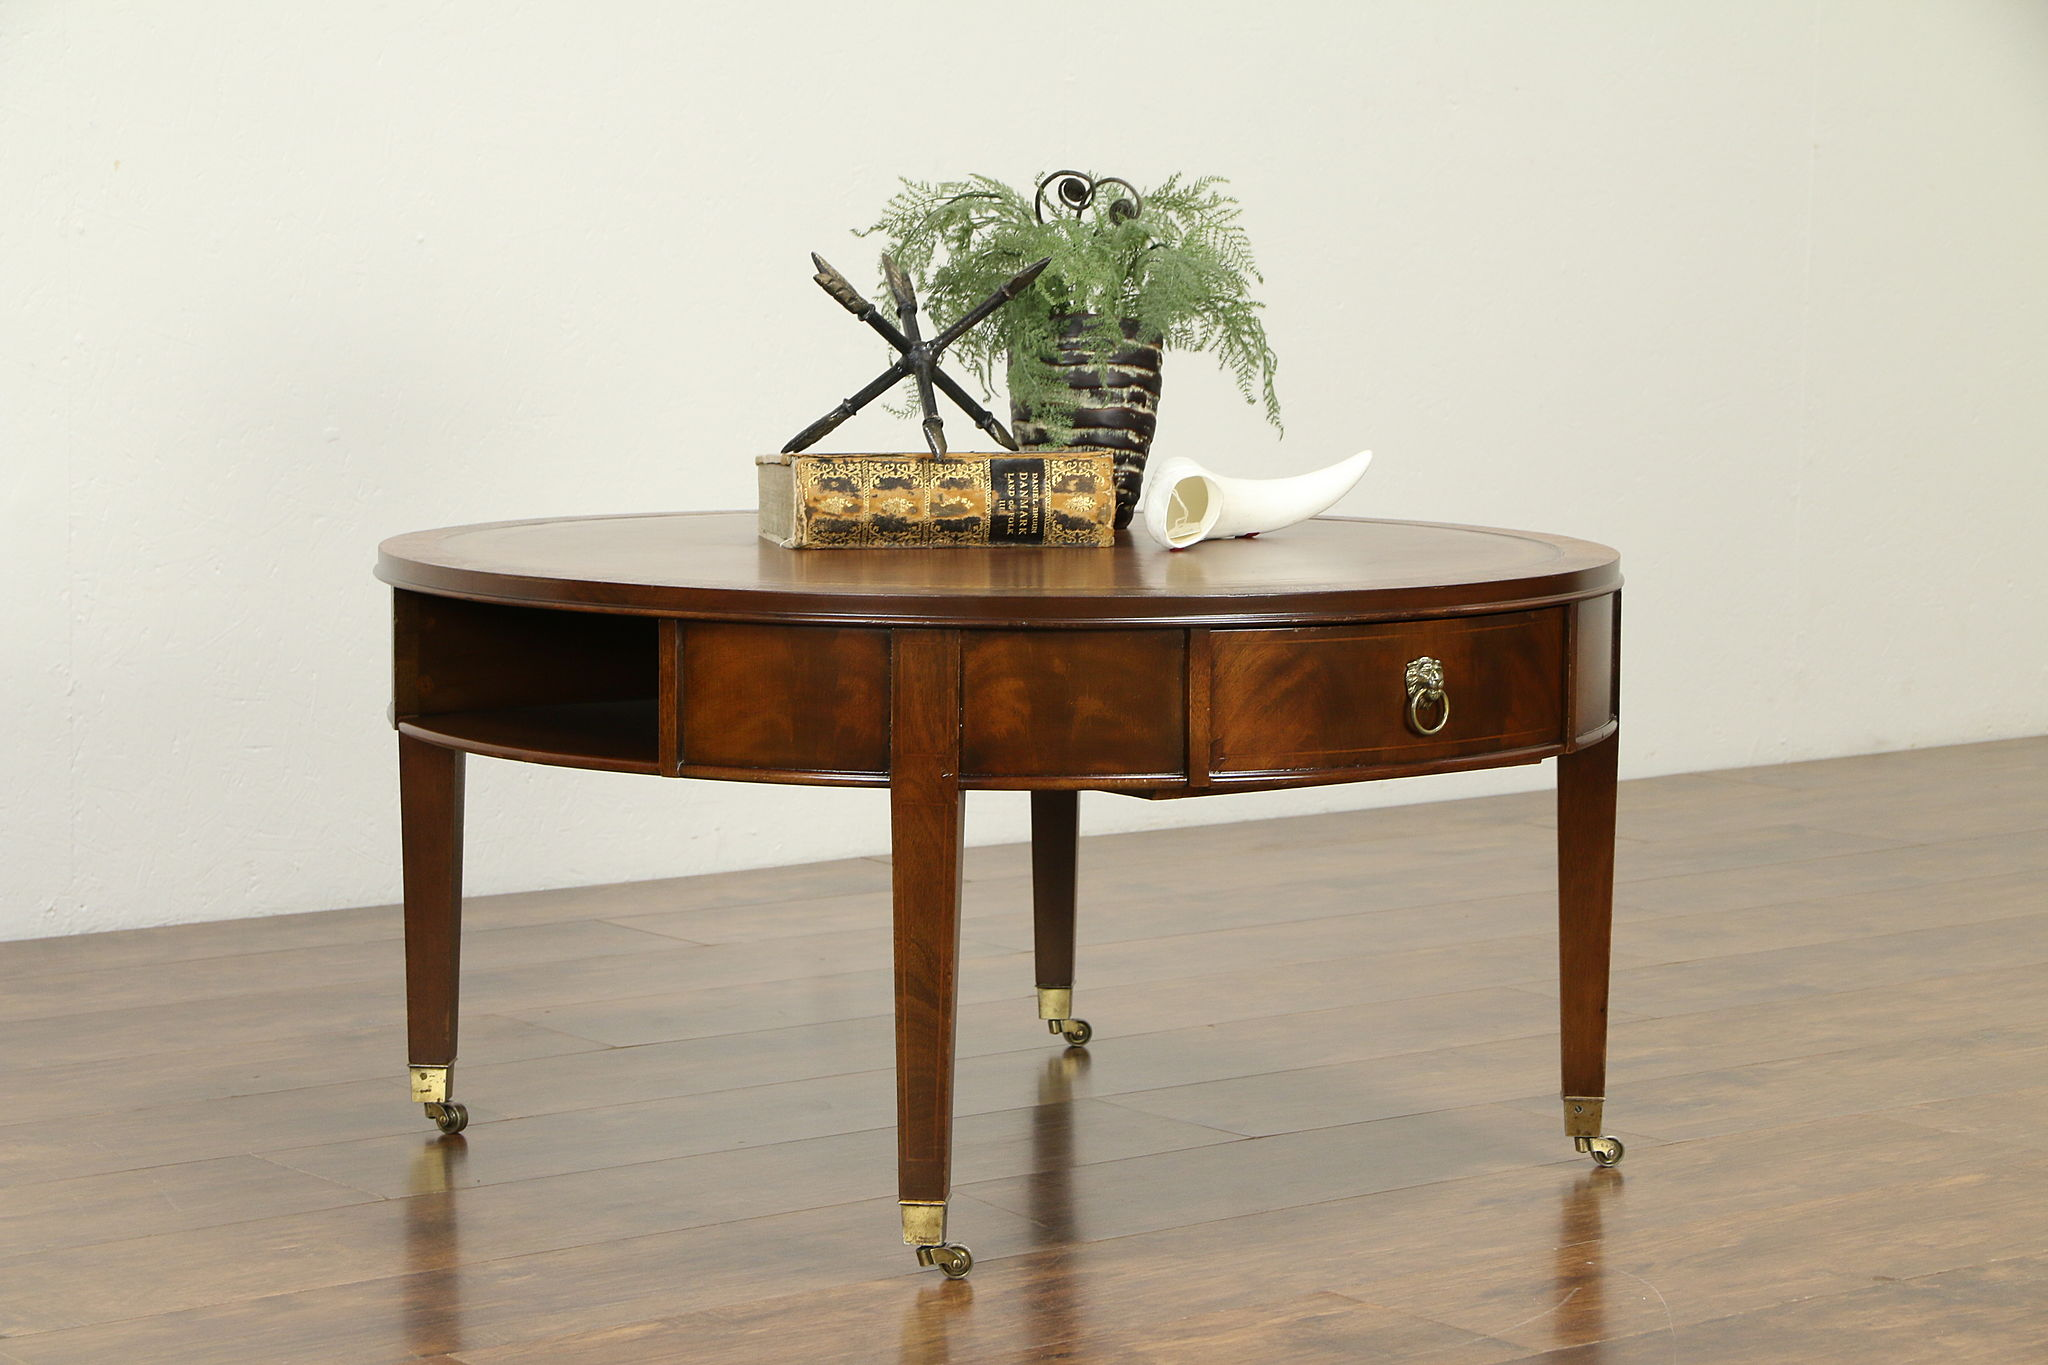 - SOLD - Traditional Vintage Drum Coffee Table, Tooled Leather Top